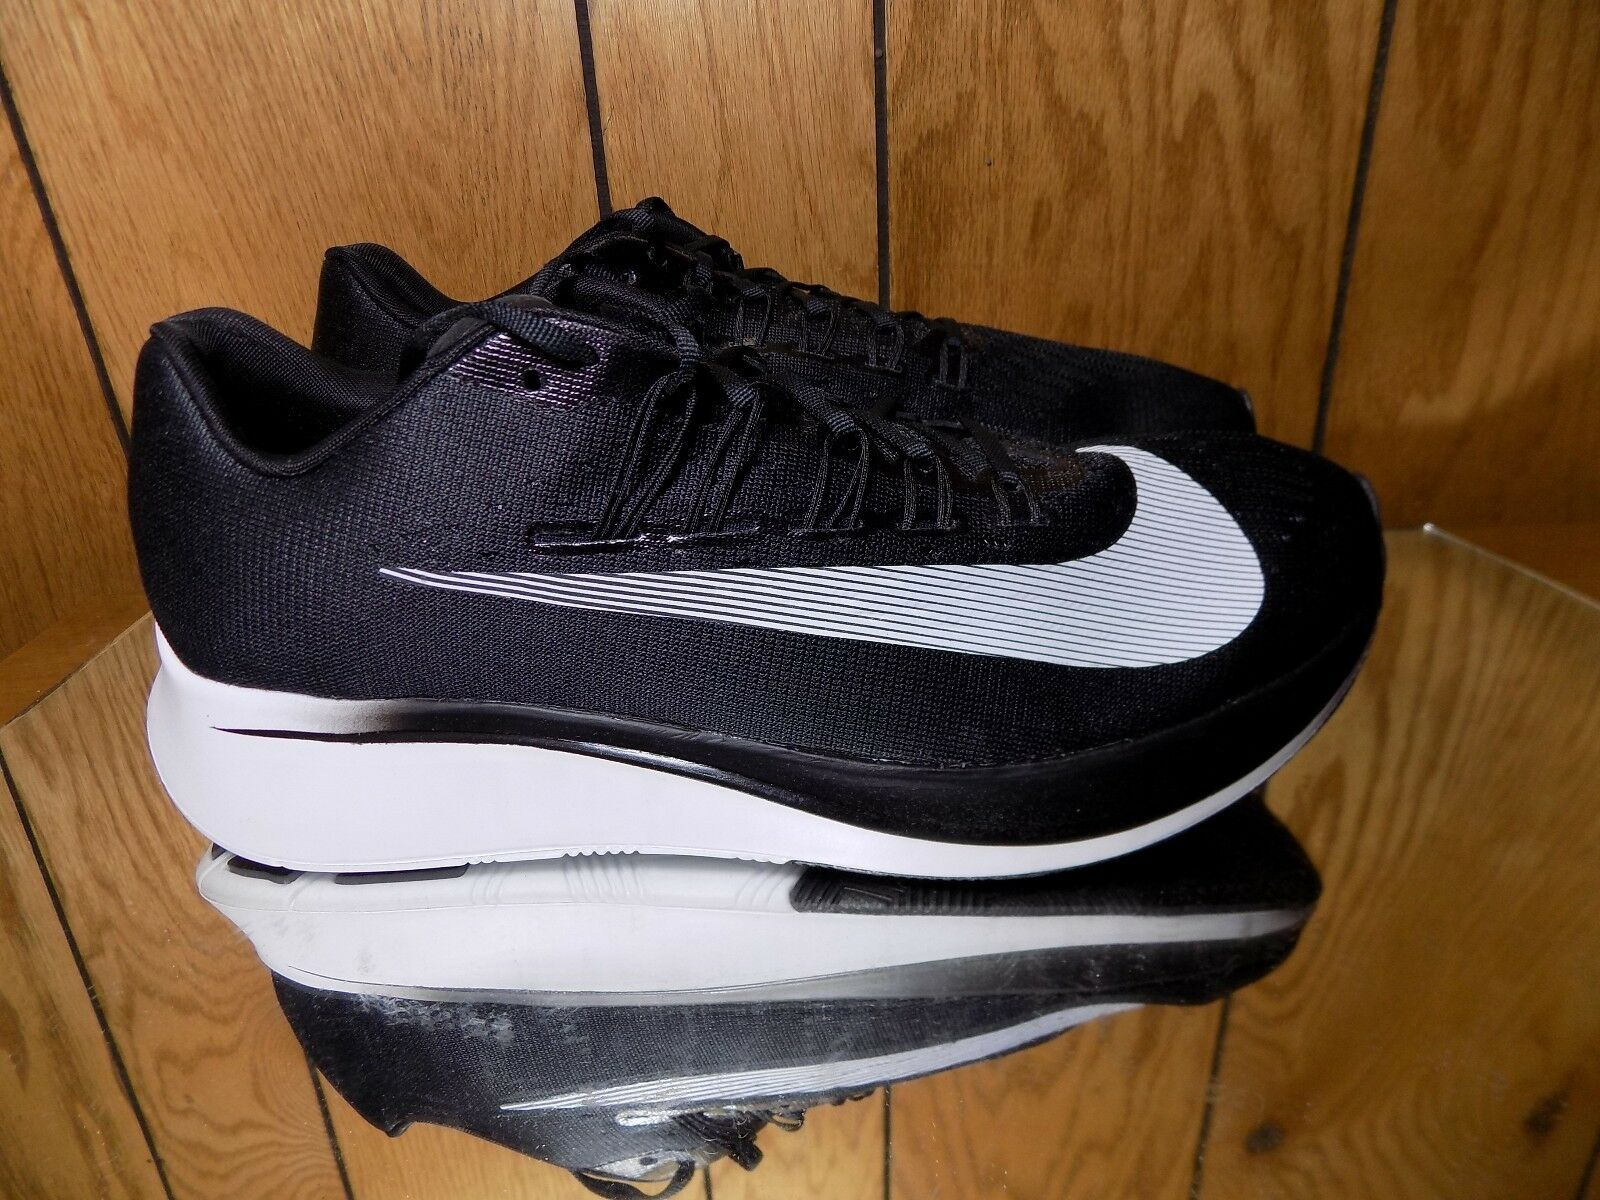 Nike Zoom Fly Running Shoes Men's Black White Anthracite 880848 001 NEW s 12